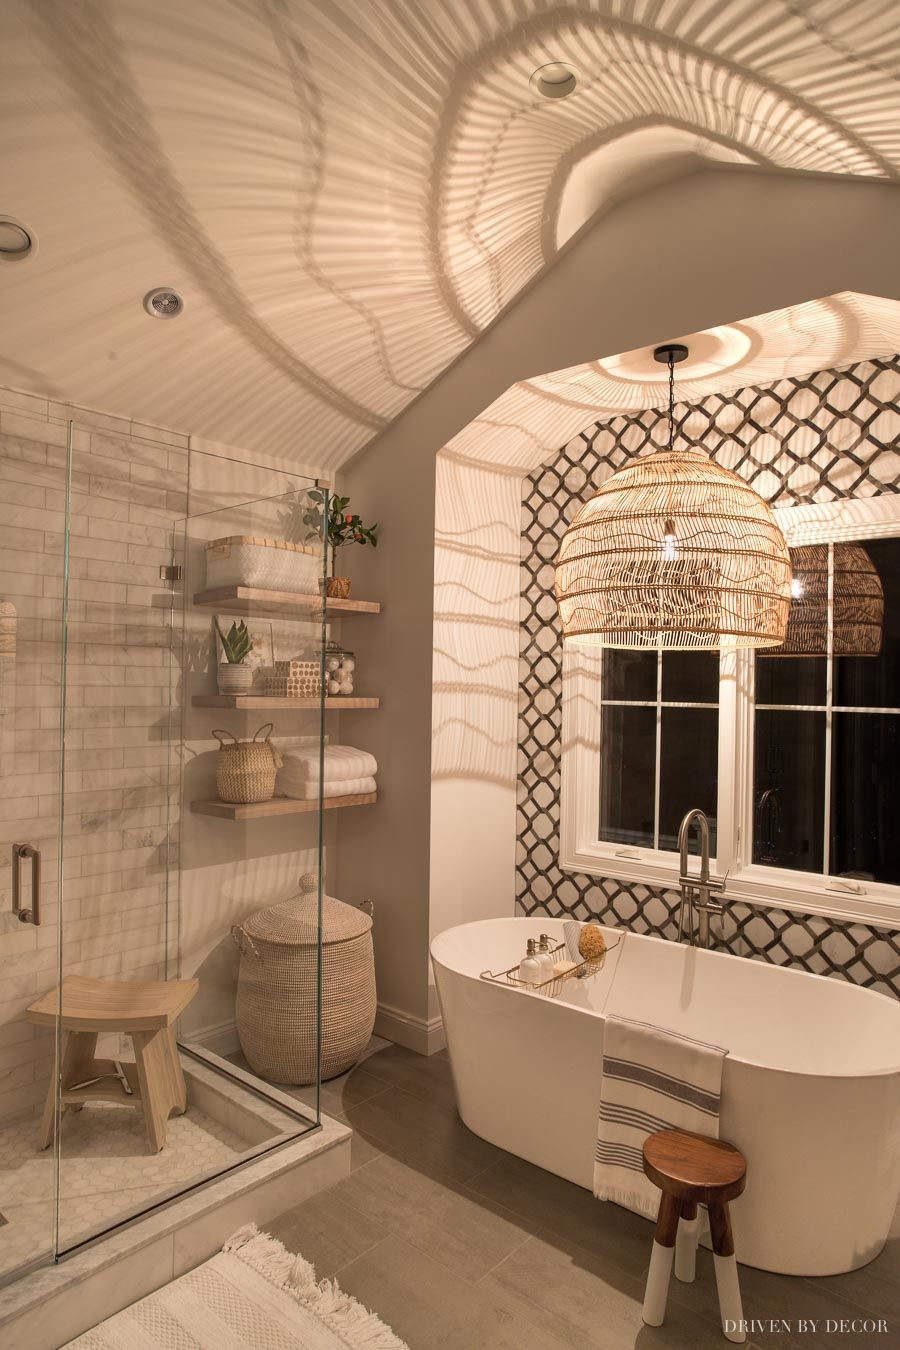 5 Decorating Project Ideas For 2021 The Sales To Snag Now So You Re Ready To Knock Them Out Driven By Decor Bathroom Inspiration Driven By Decor House Bathroom